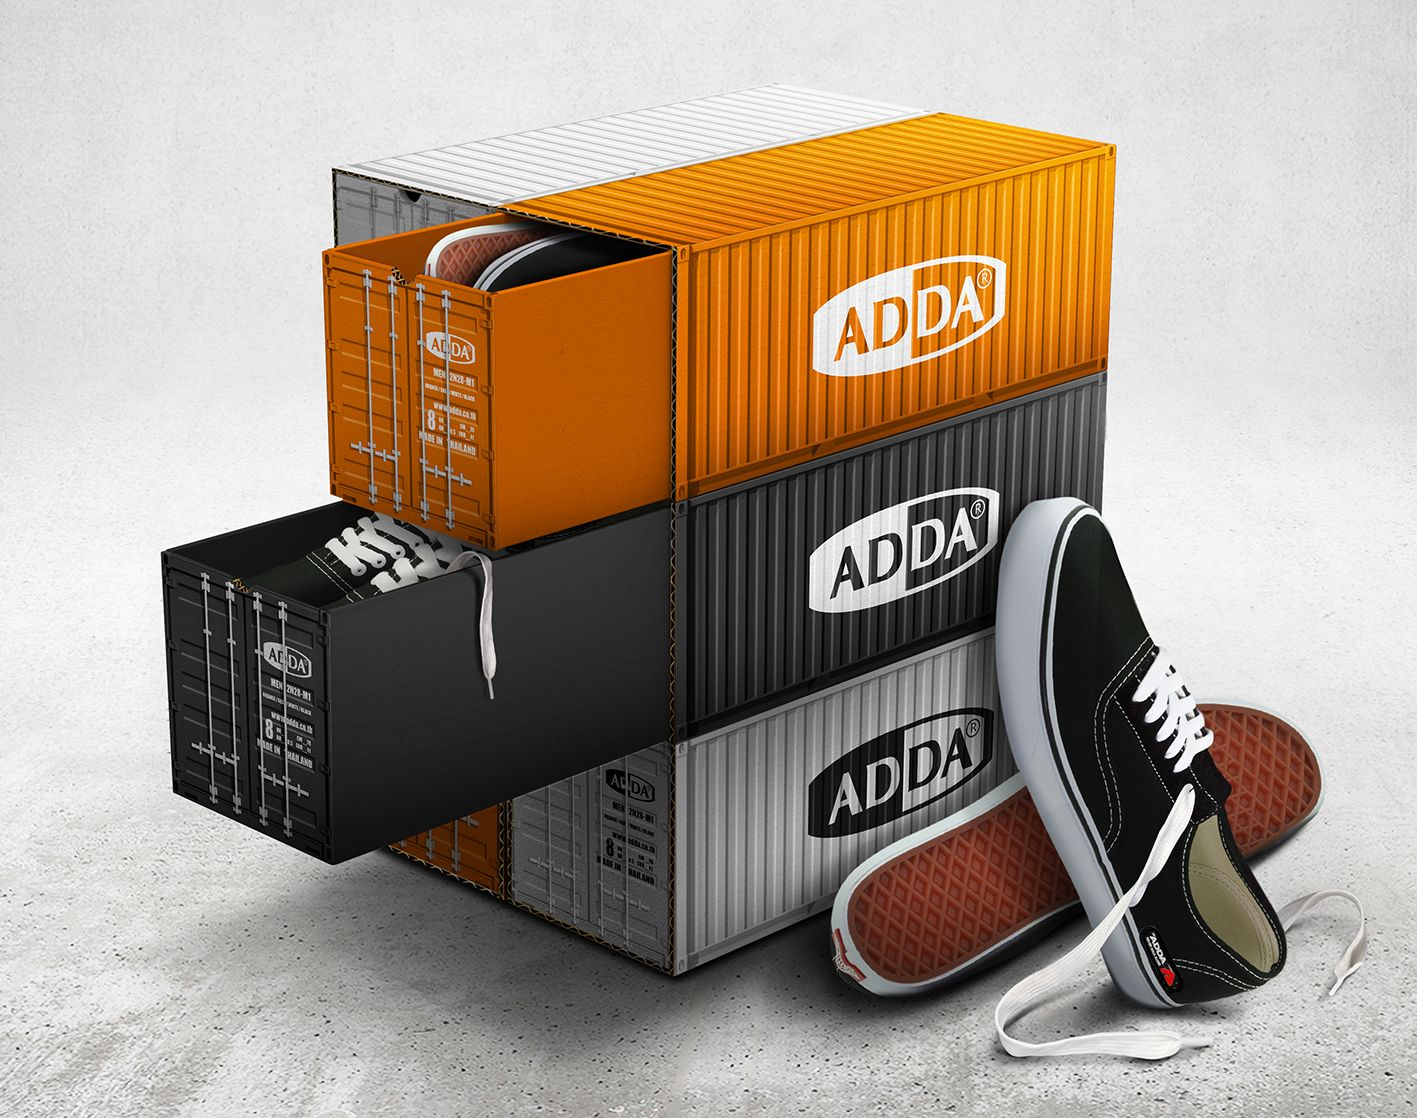 Adda Container Shoe Box   Container Events   Pinterest   Packaging ...